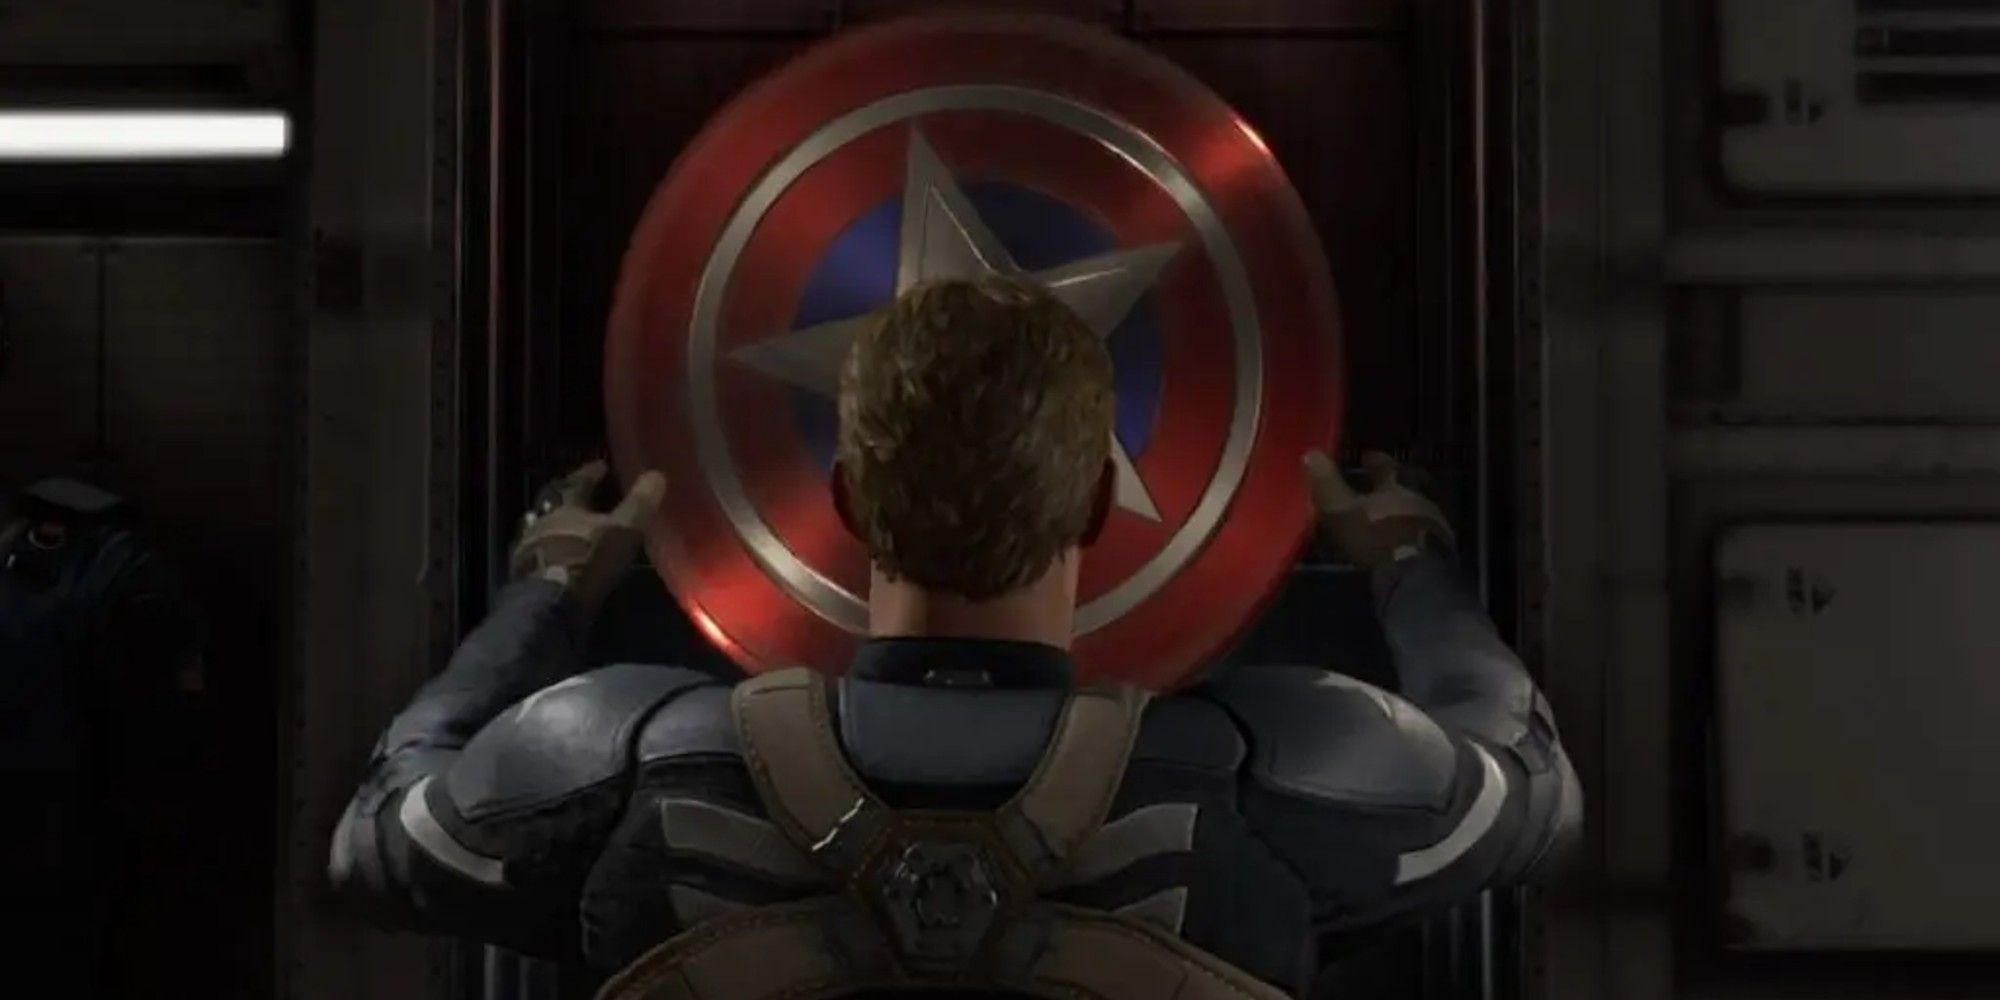 Marvel's Avengers Captain America MCU Skin Is A Win For The Game